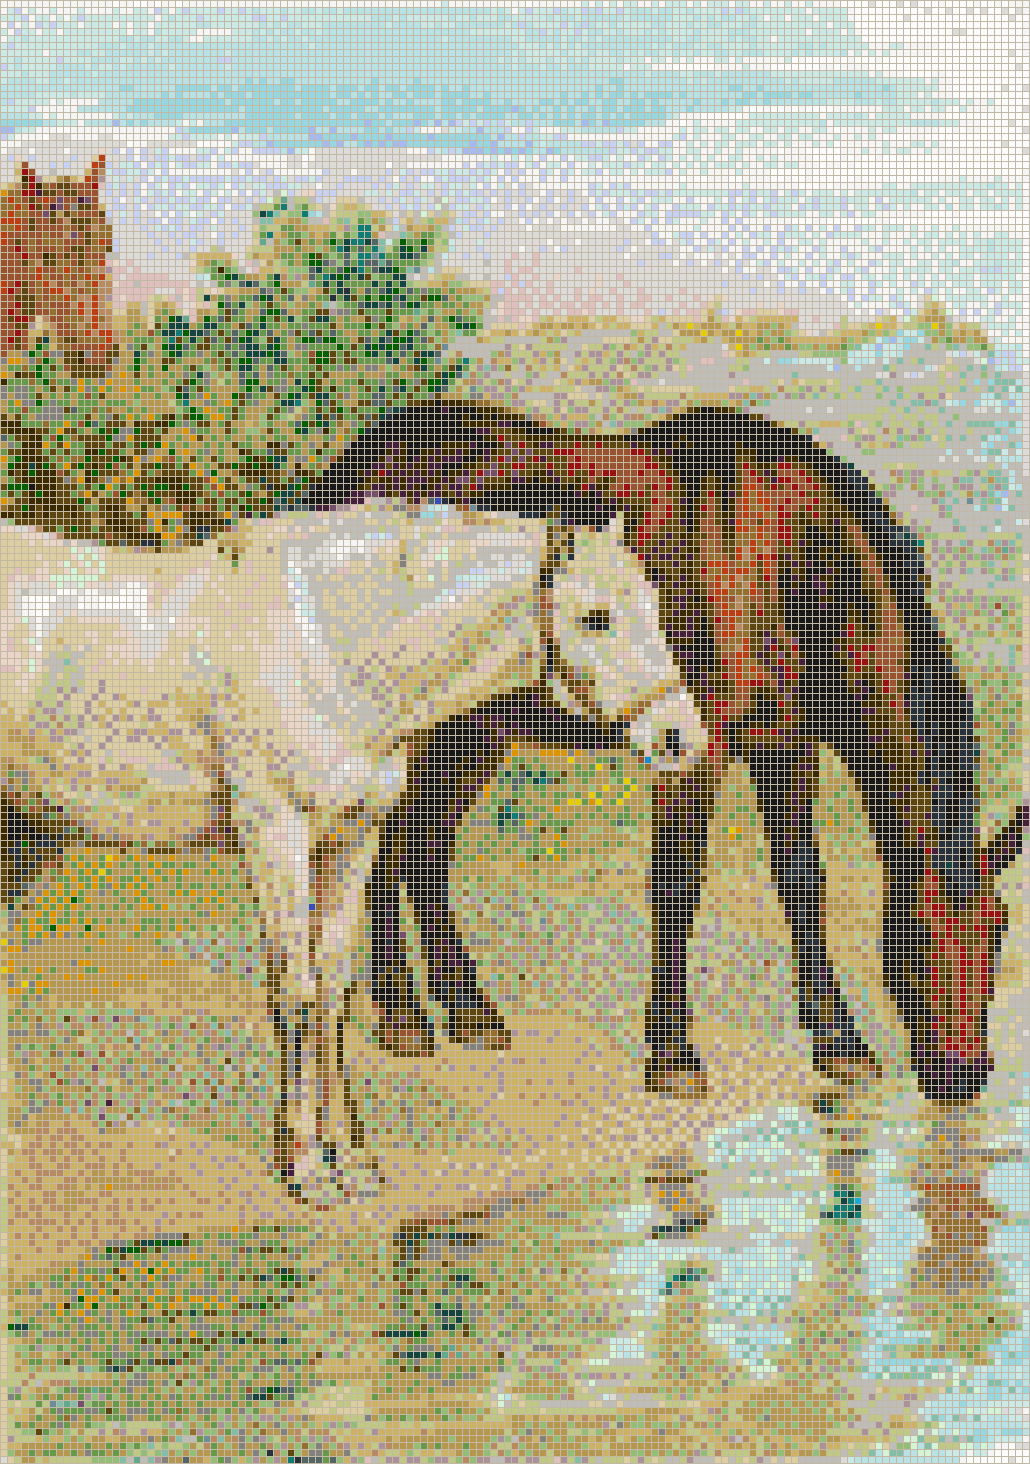 Horses Drinking - Mosaic Tile Picture Art